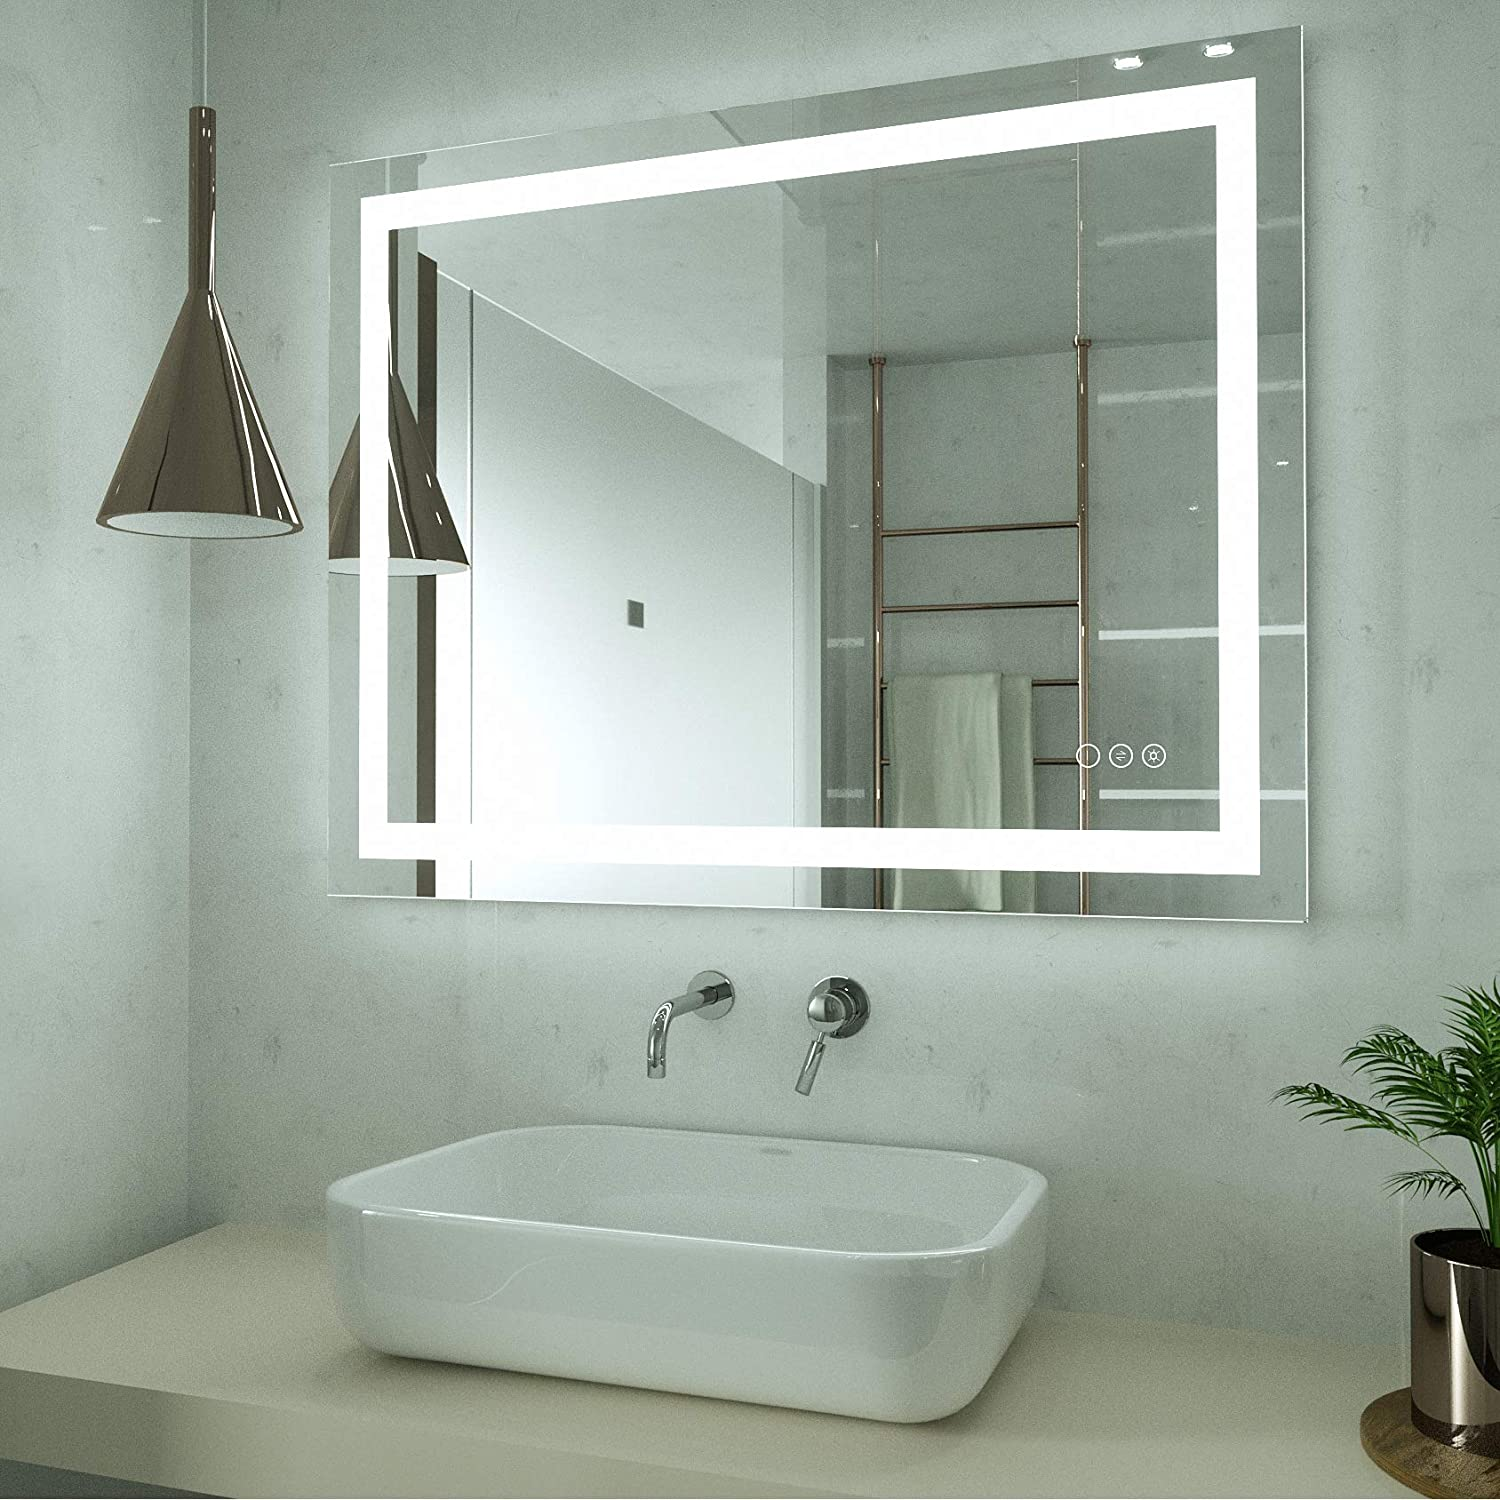 HAUSCHEN 32×40 inch LED Lighted Bathroom Wall Mounted Mirror with High Lumen CRI 90 Adjustable Warm White Daylight Lights Anti Fog Dimmable Memory Touch Button IP44 Waterproof Vertical Horizontal